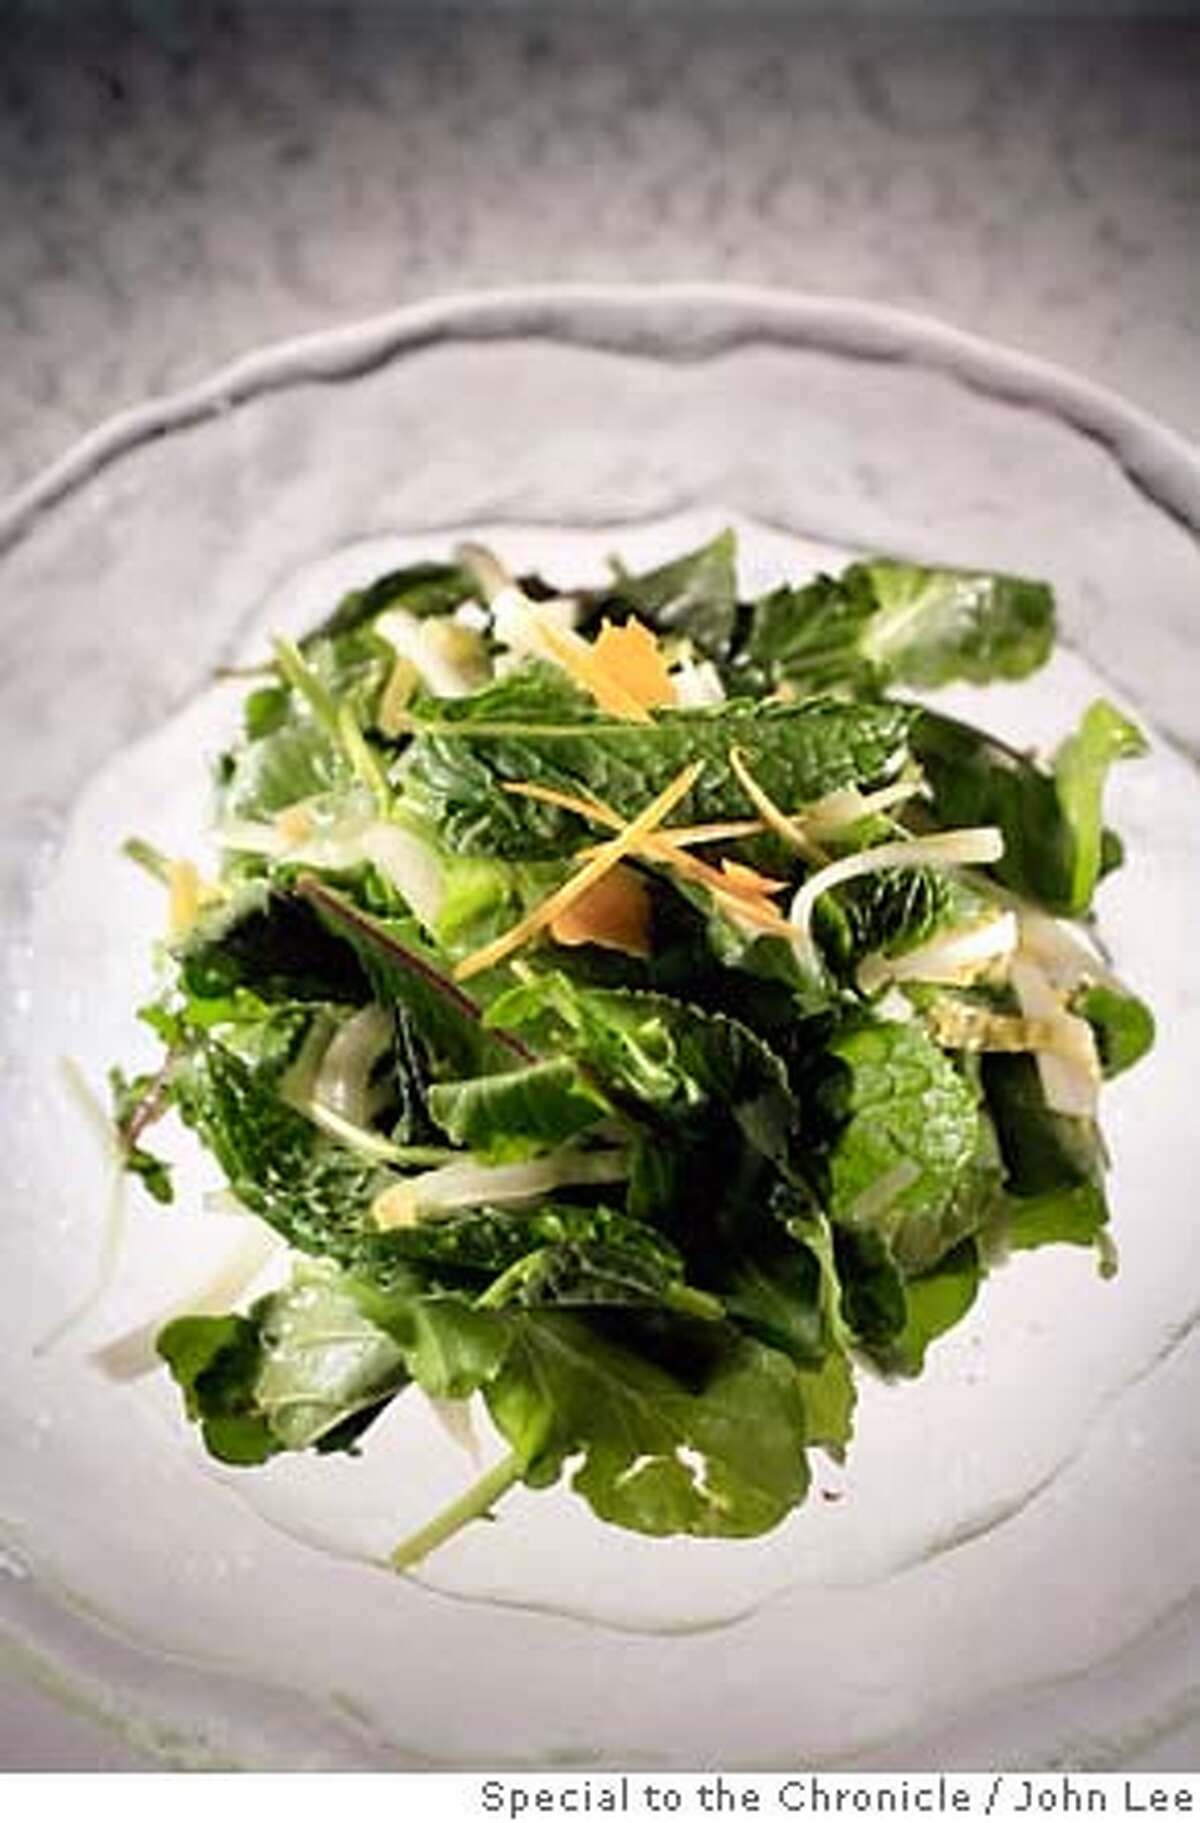 VALENTINE14_SALAD_JOHNLEE.JPG Endive, fennel and arugula salad with mint. By JOHN LEE/SPECIAL TO THE CHRONICLE